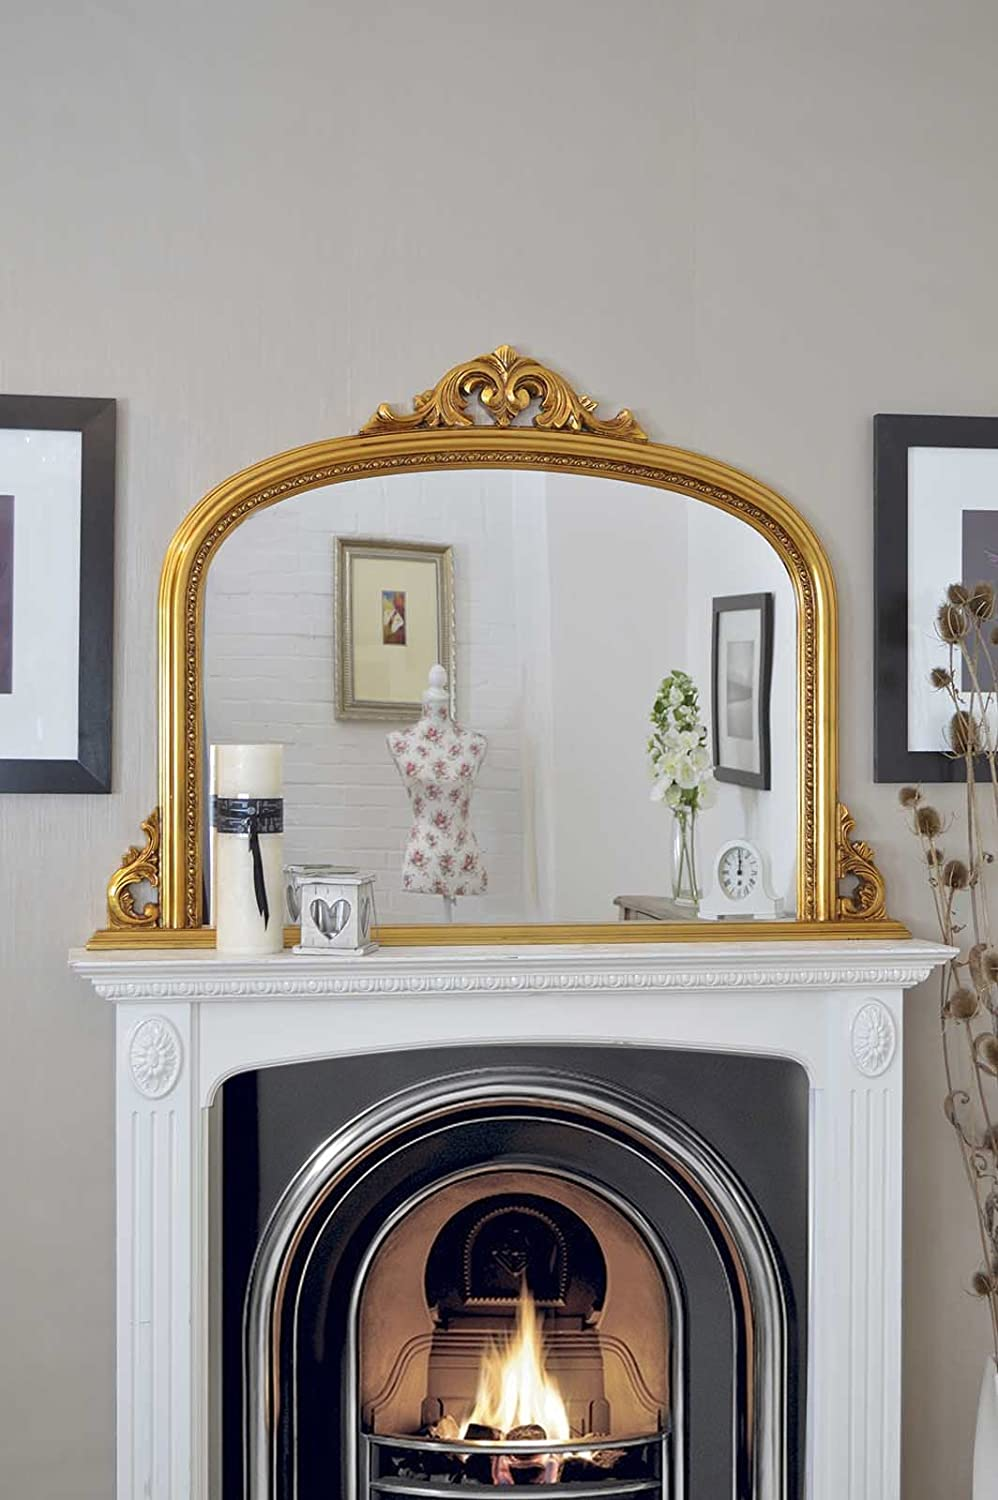 Classic French Inspired ANTIQUE GOLD ORNATE OVERMANTLE MIRROR Complete With Premium Quality Pilkingtons Glass